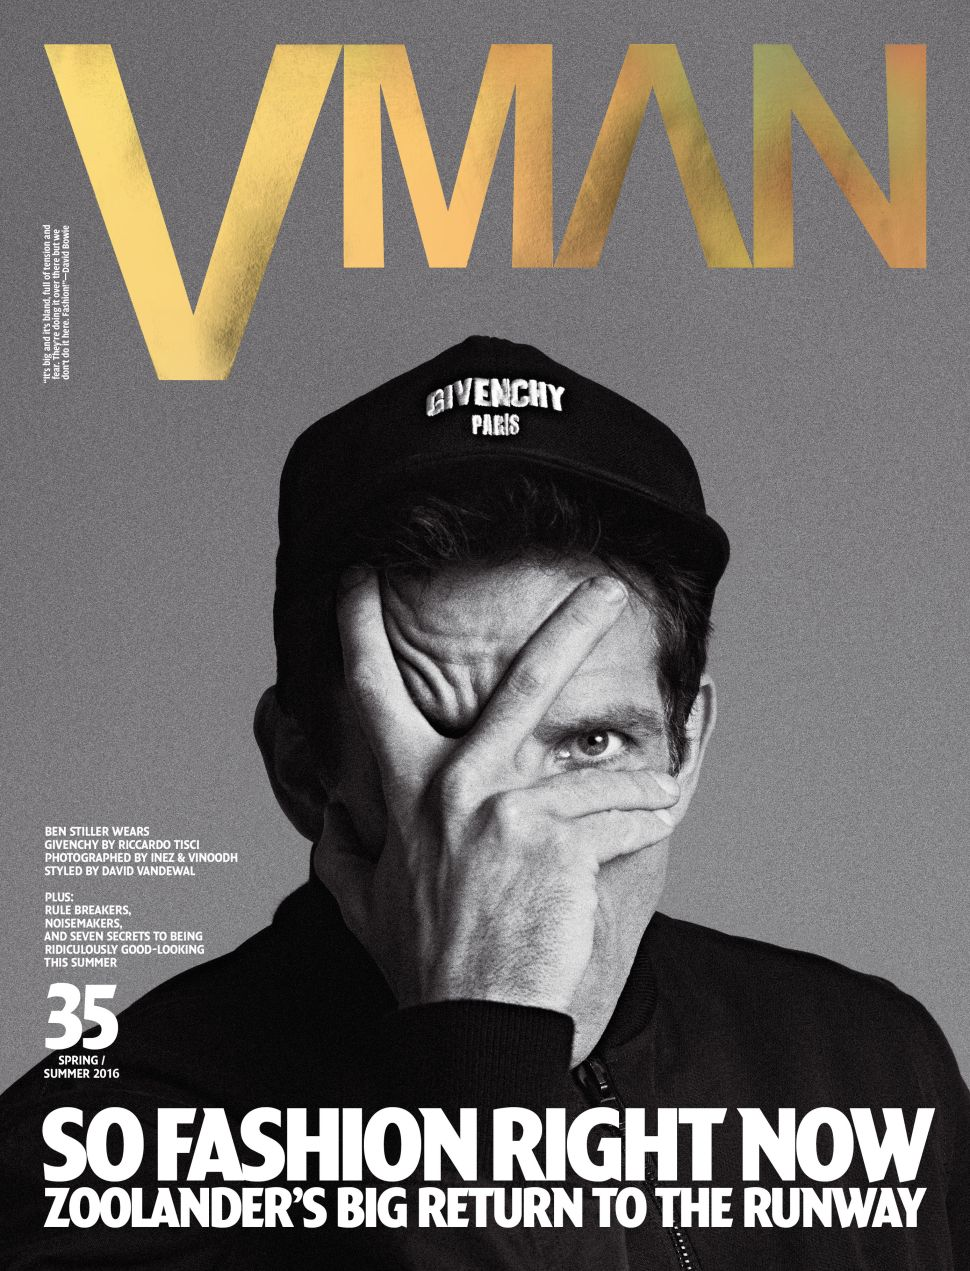 Ben Stiller Lands 4 Magazine Covers, Now Takes Fashion Seriously